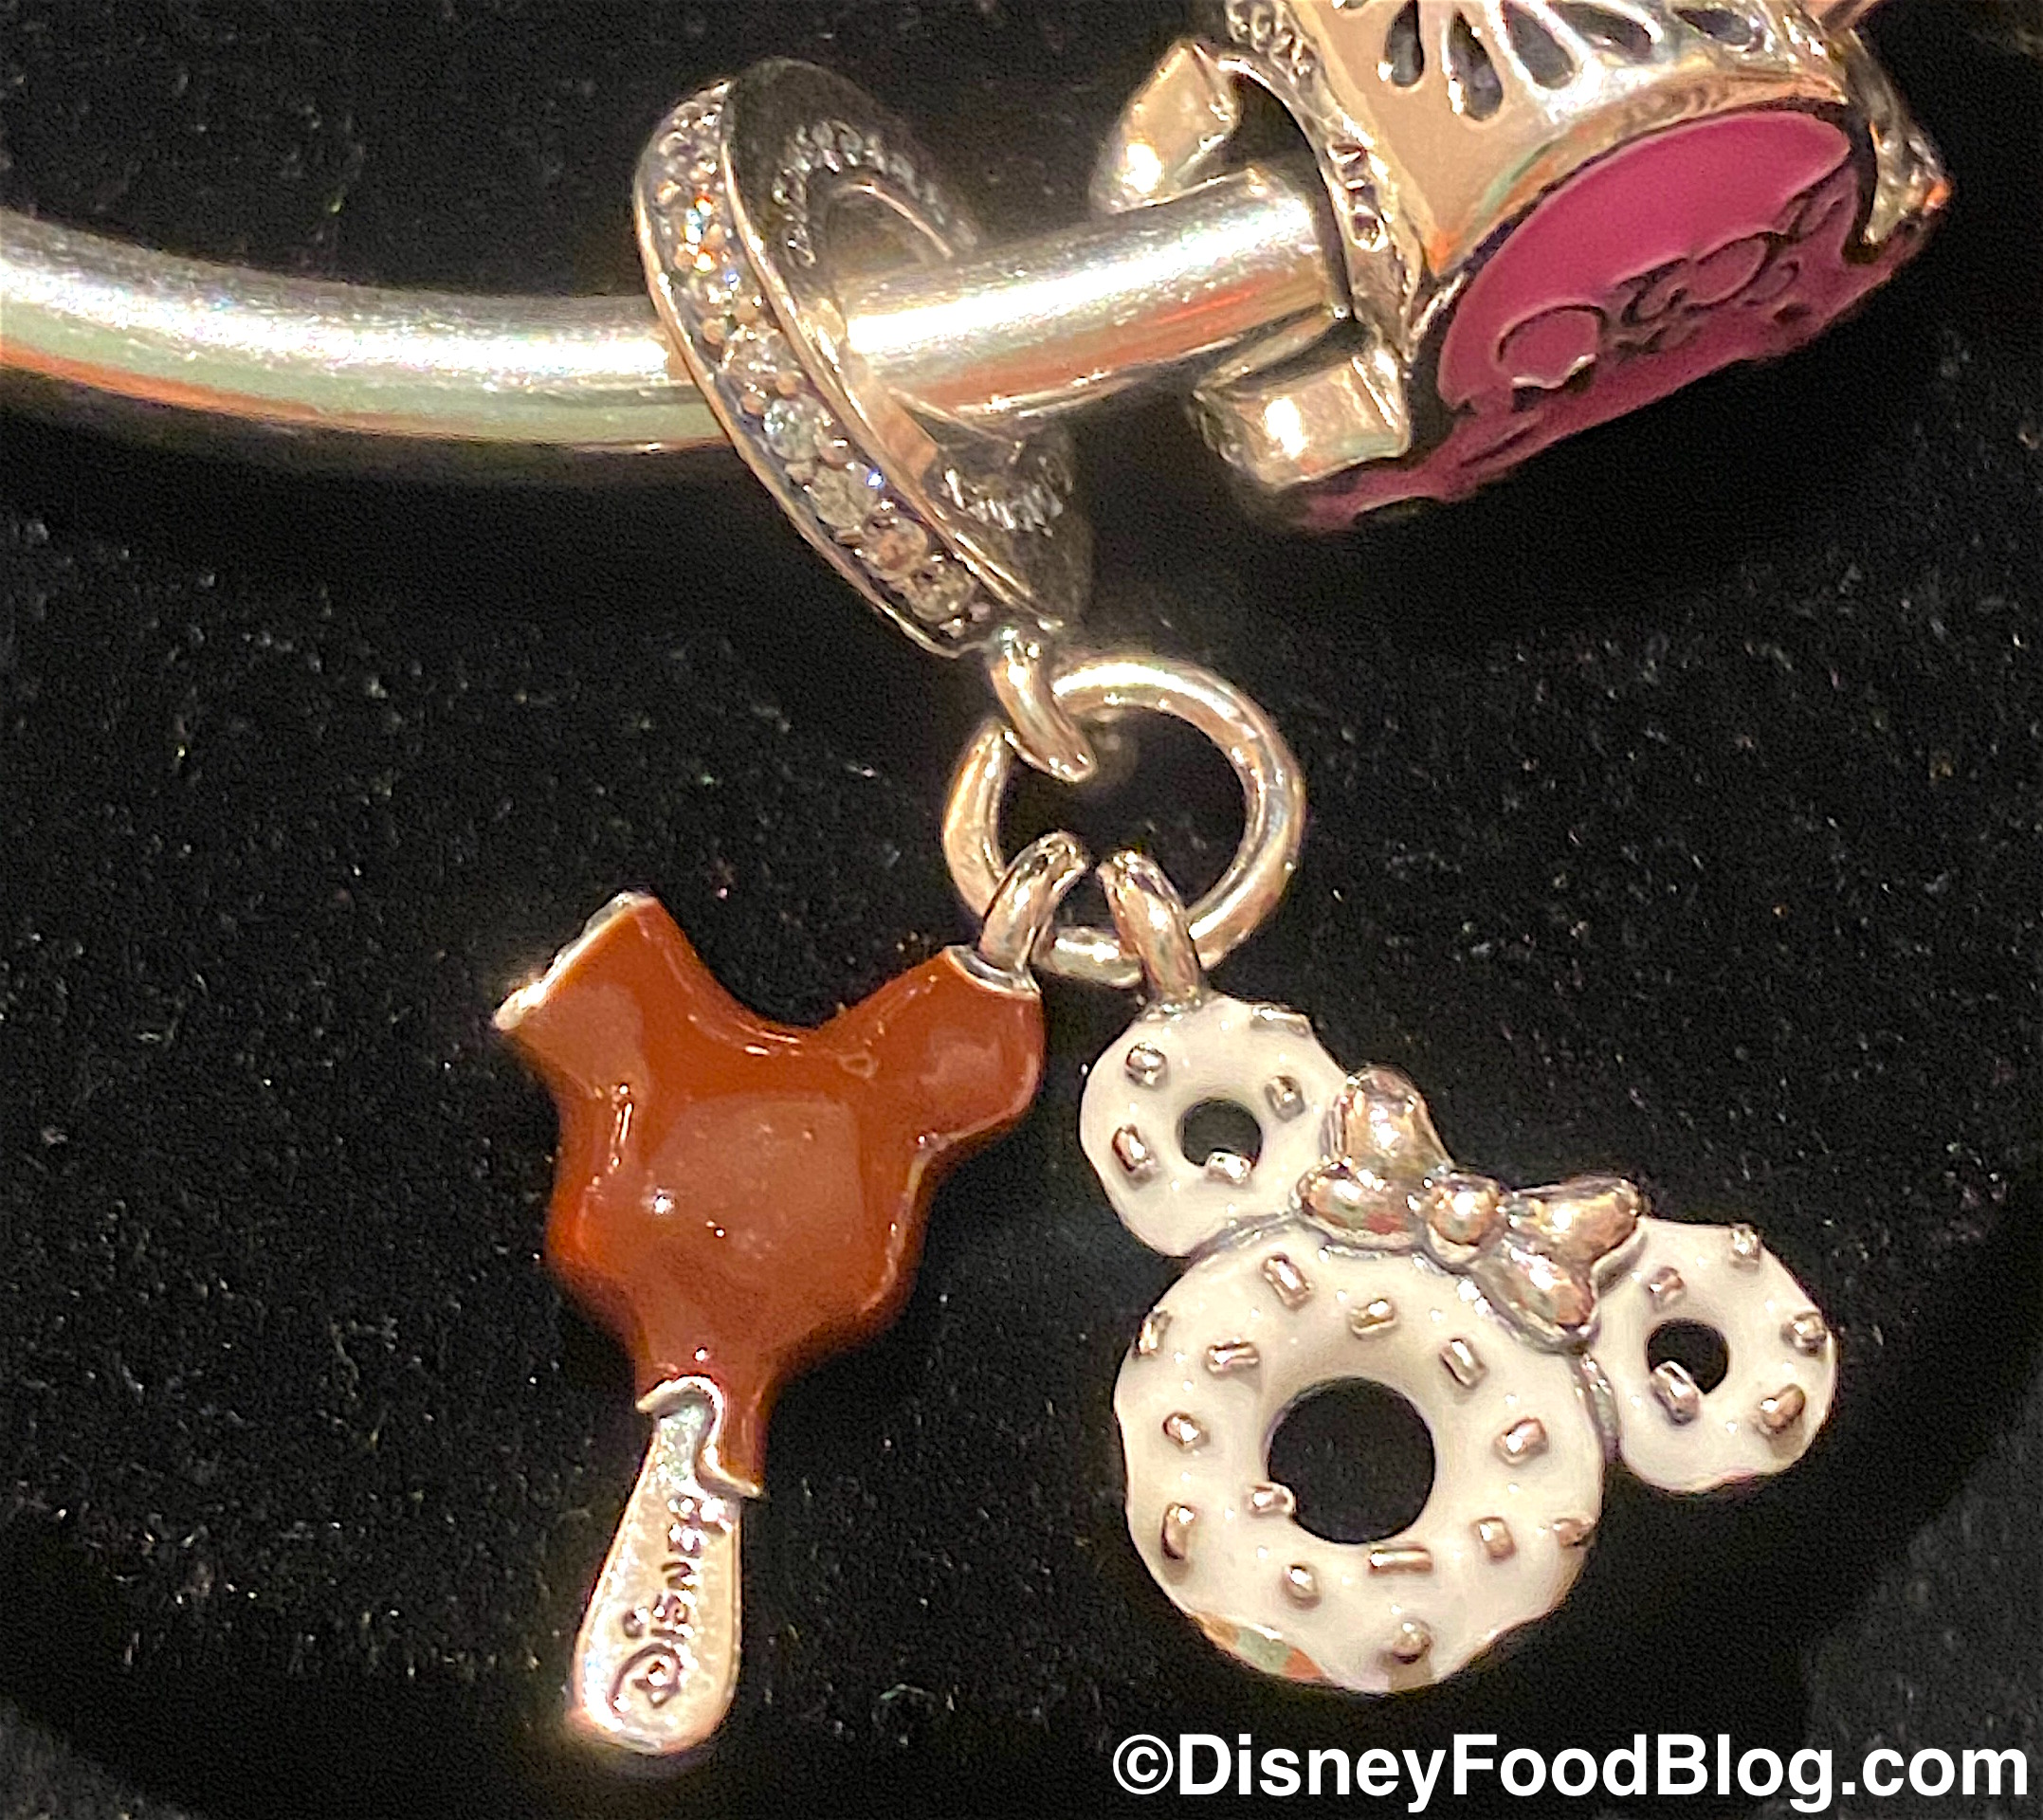 Rep Classic Disney Snacks Attractions And Souvenirs With These Pandora Charms In Disney World The Disney Food Blog